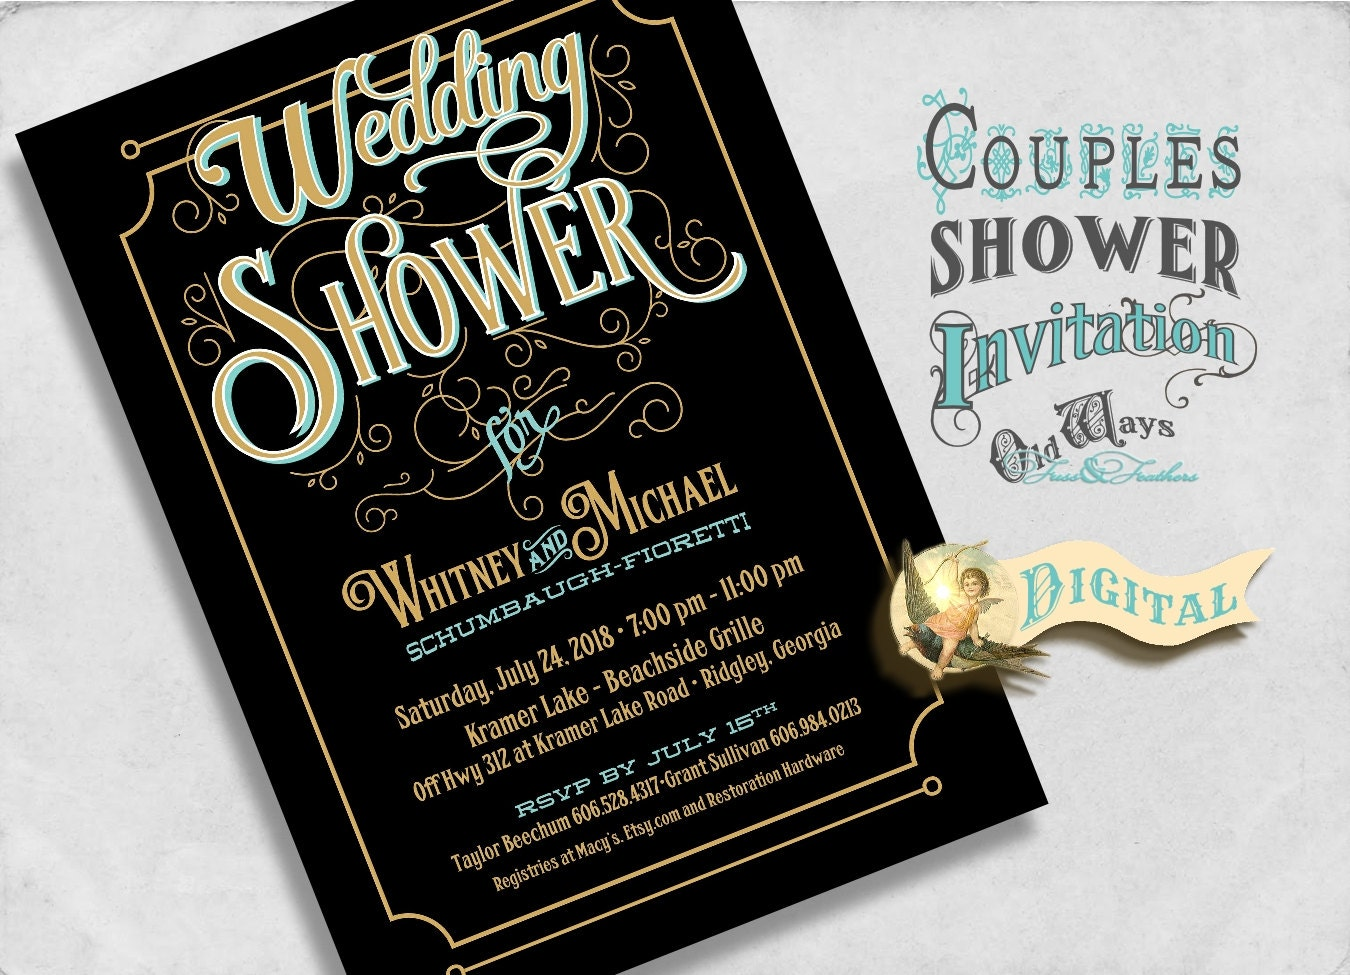 Wedding shower invitation black and gold couples shower for Black and gold wedding shower invitations